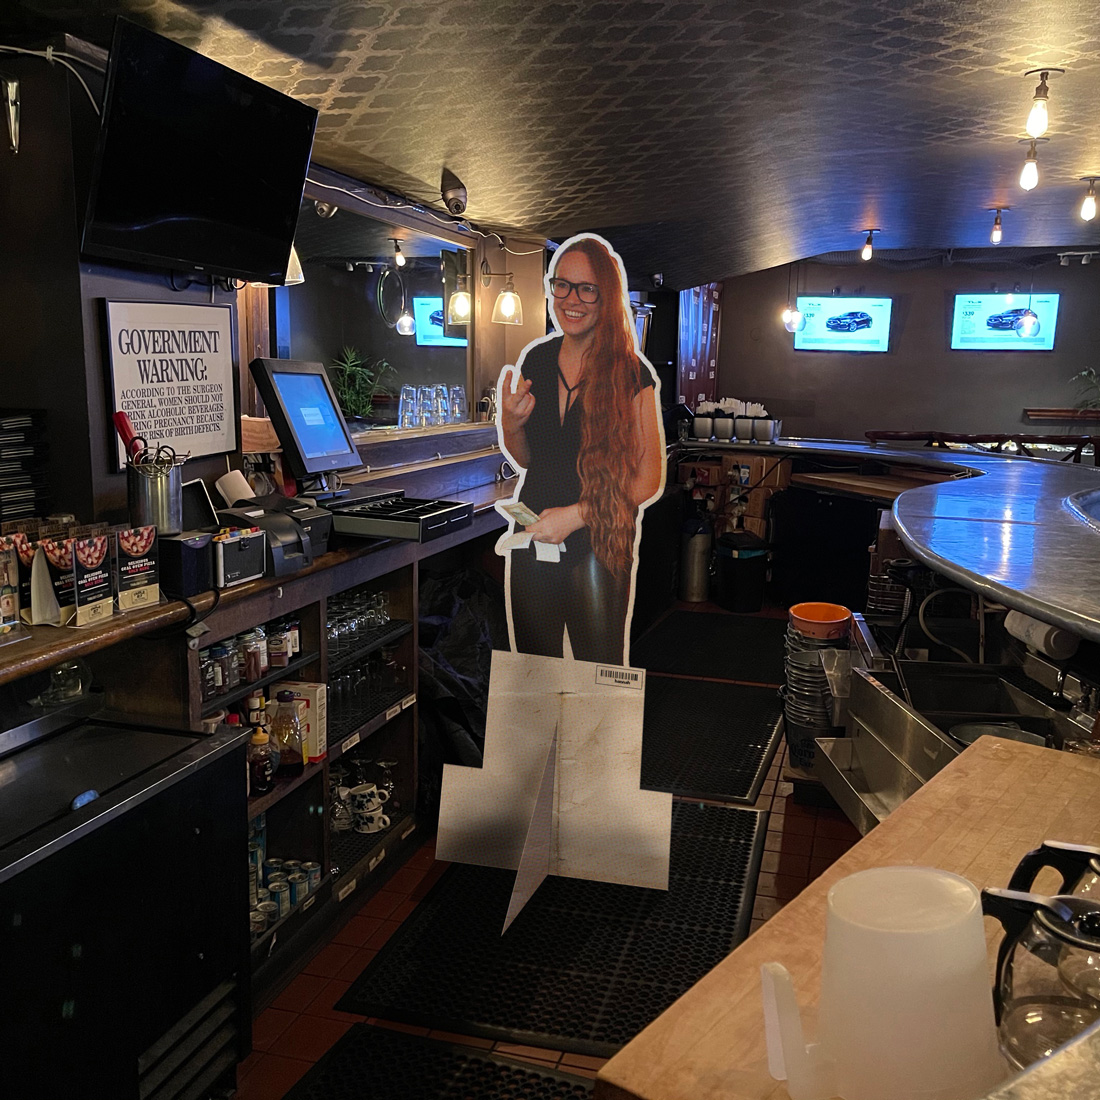 There is a cardboard of Hannah behind the bar